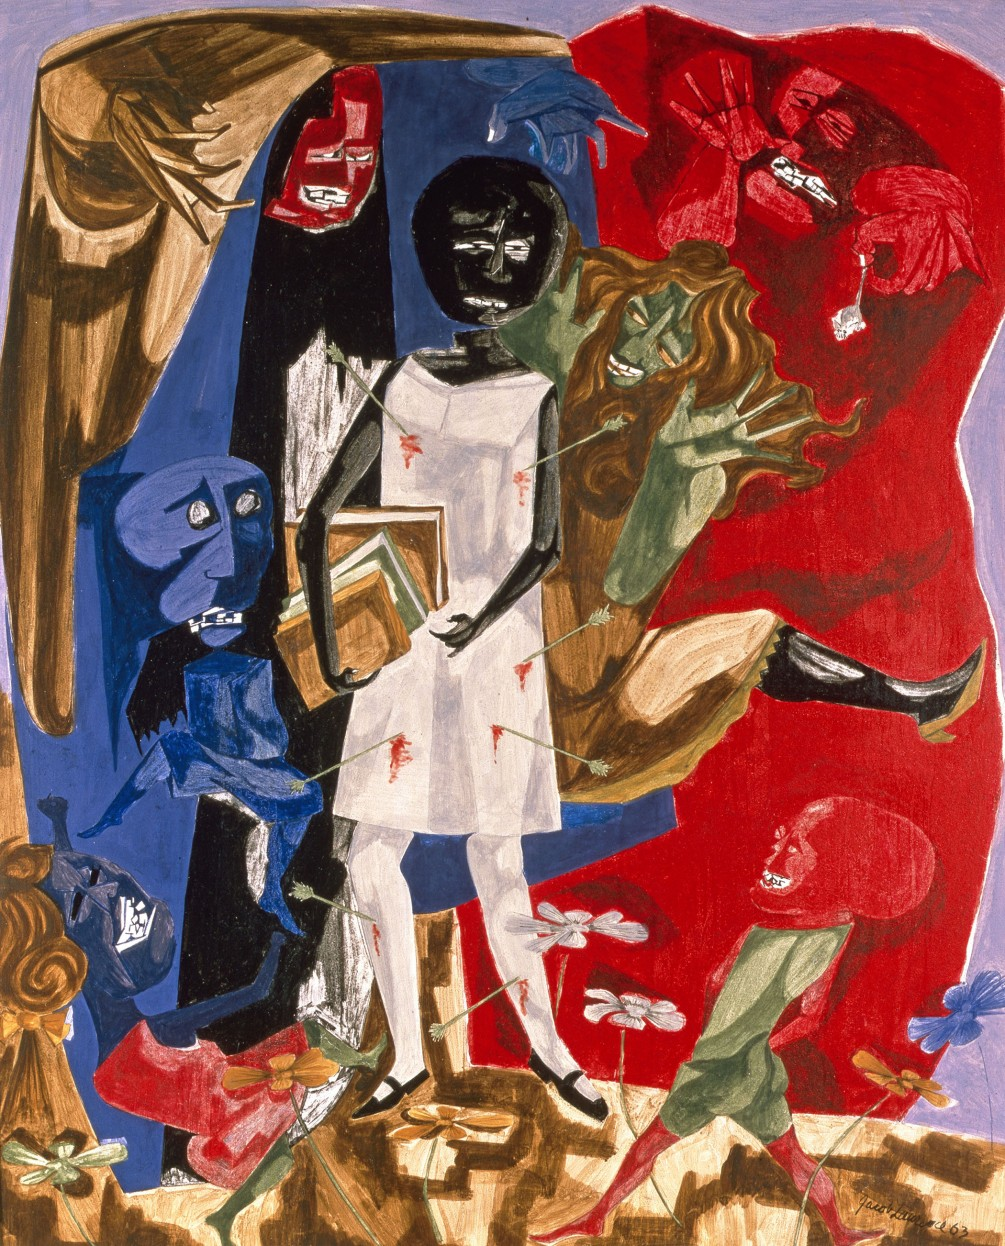 Jacob Lawrence, Ordeal of Alice, 1963, egg tempera on hardboard, 24 x 20 inches